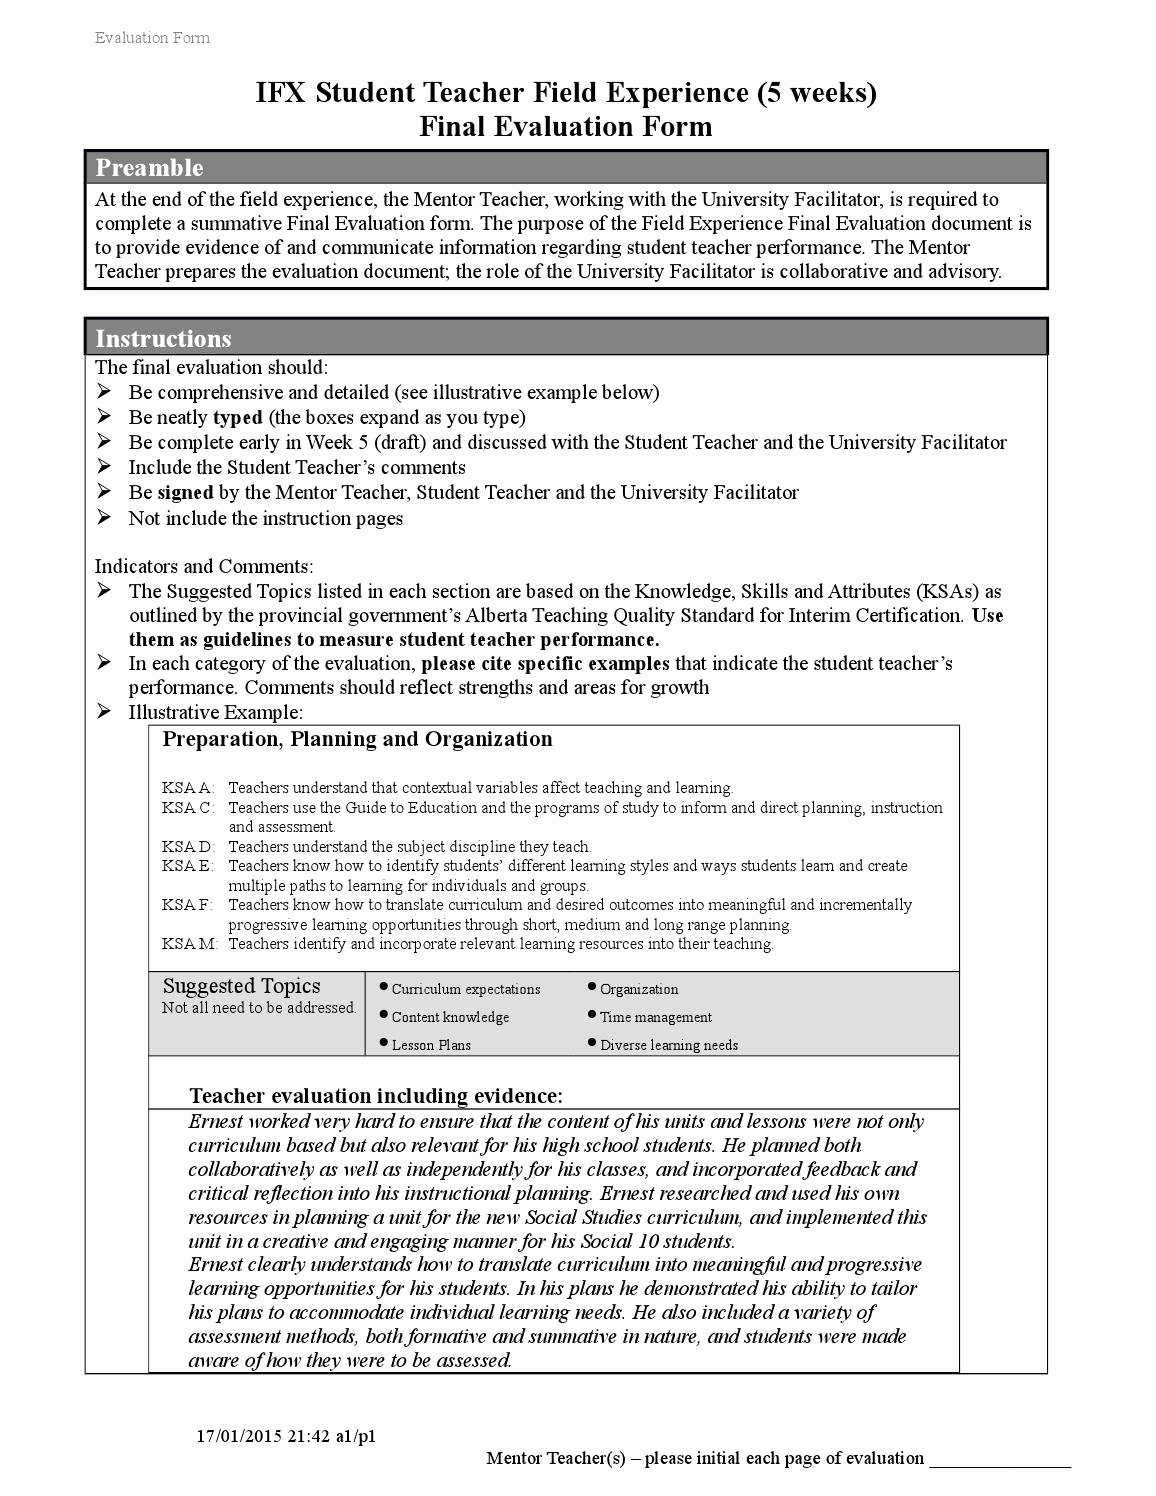 Teacher Performance Evaluation form Unique ifx Final Evaluation forms New 2013 1 by Shelley Wiebe issuu